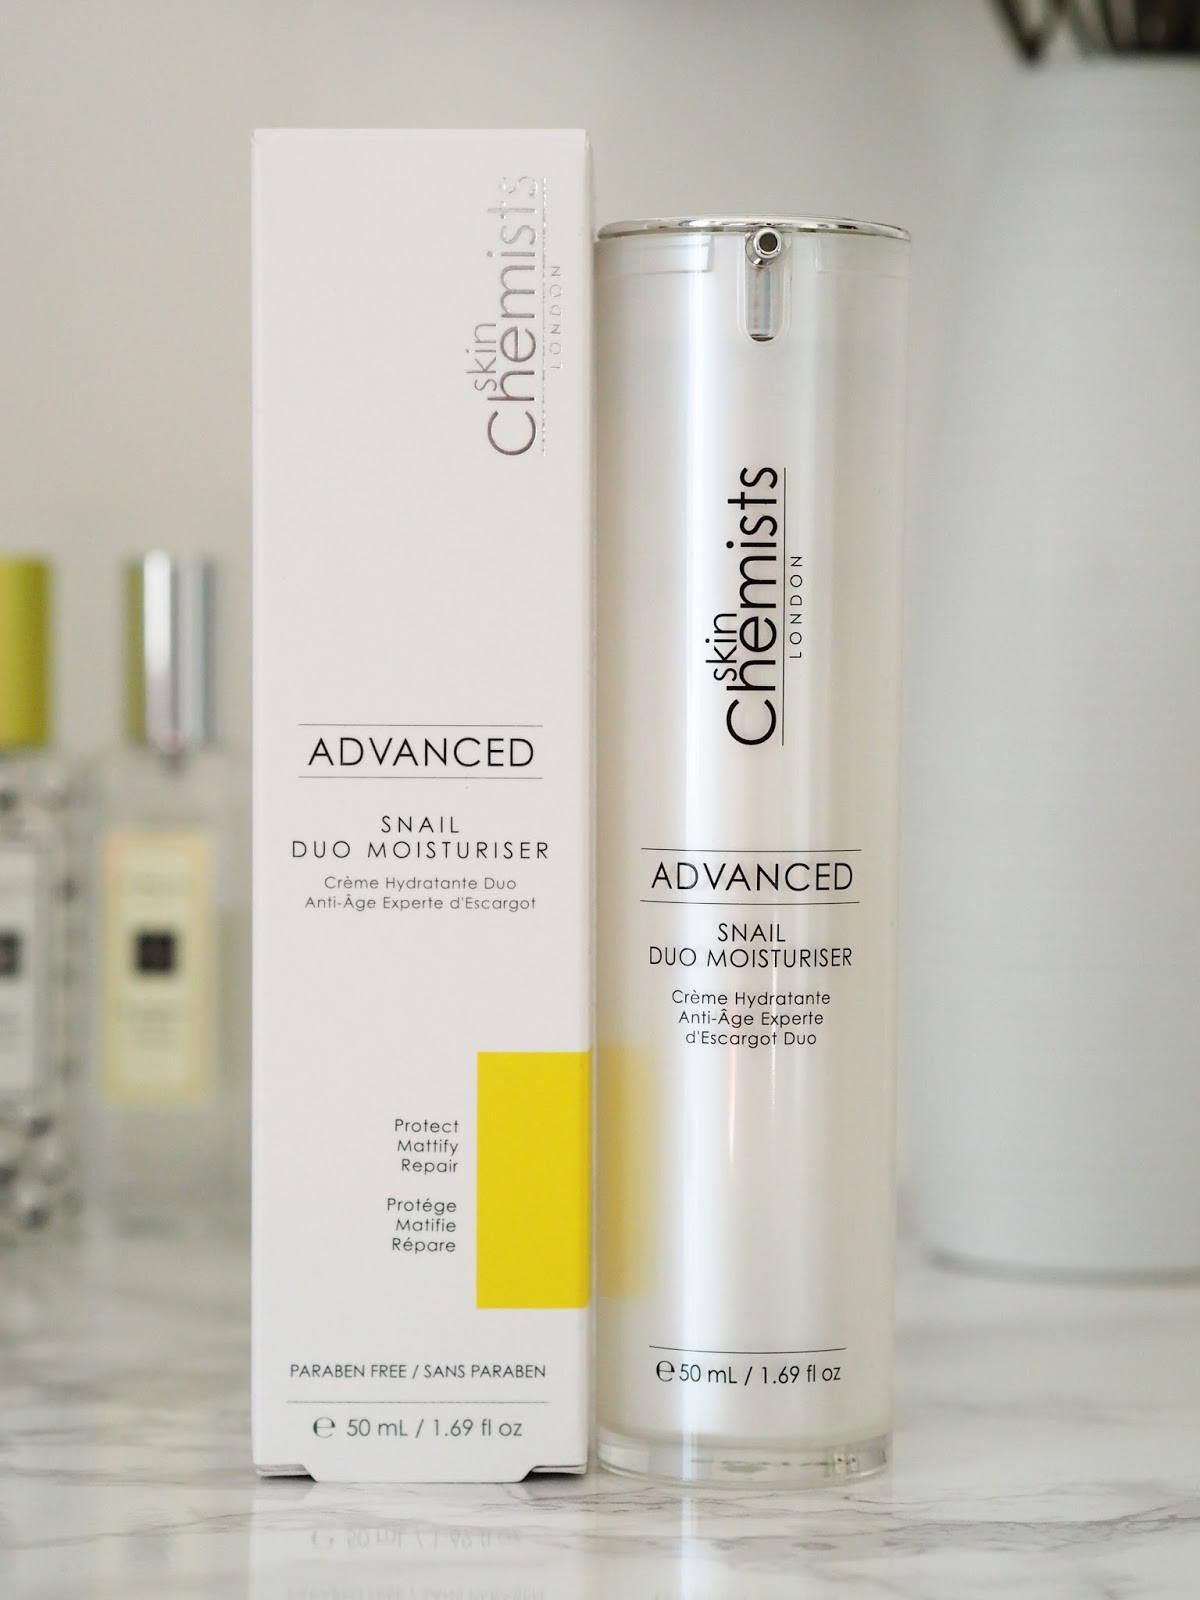 skinChemists review advanced snail duo moisturiser beauty skincare Priceless Life of Mine